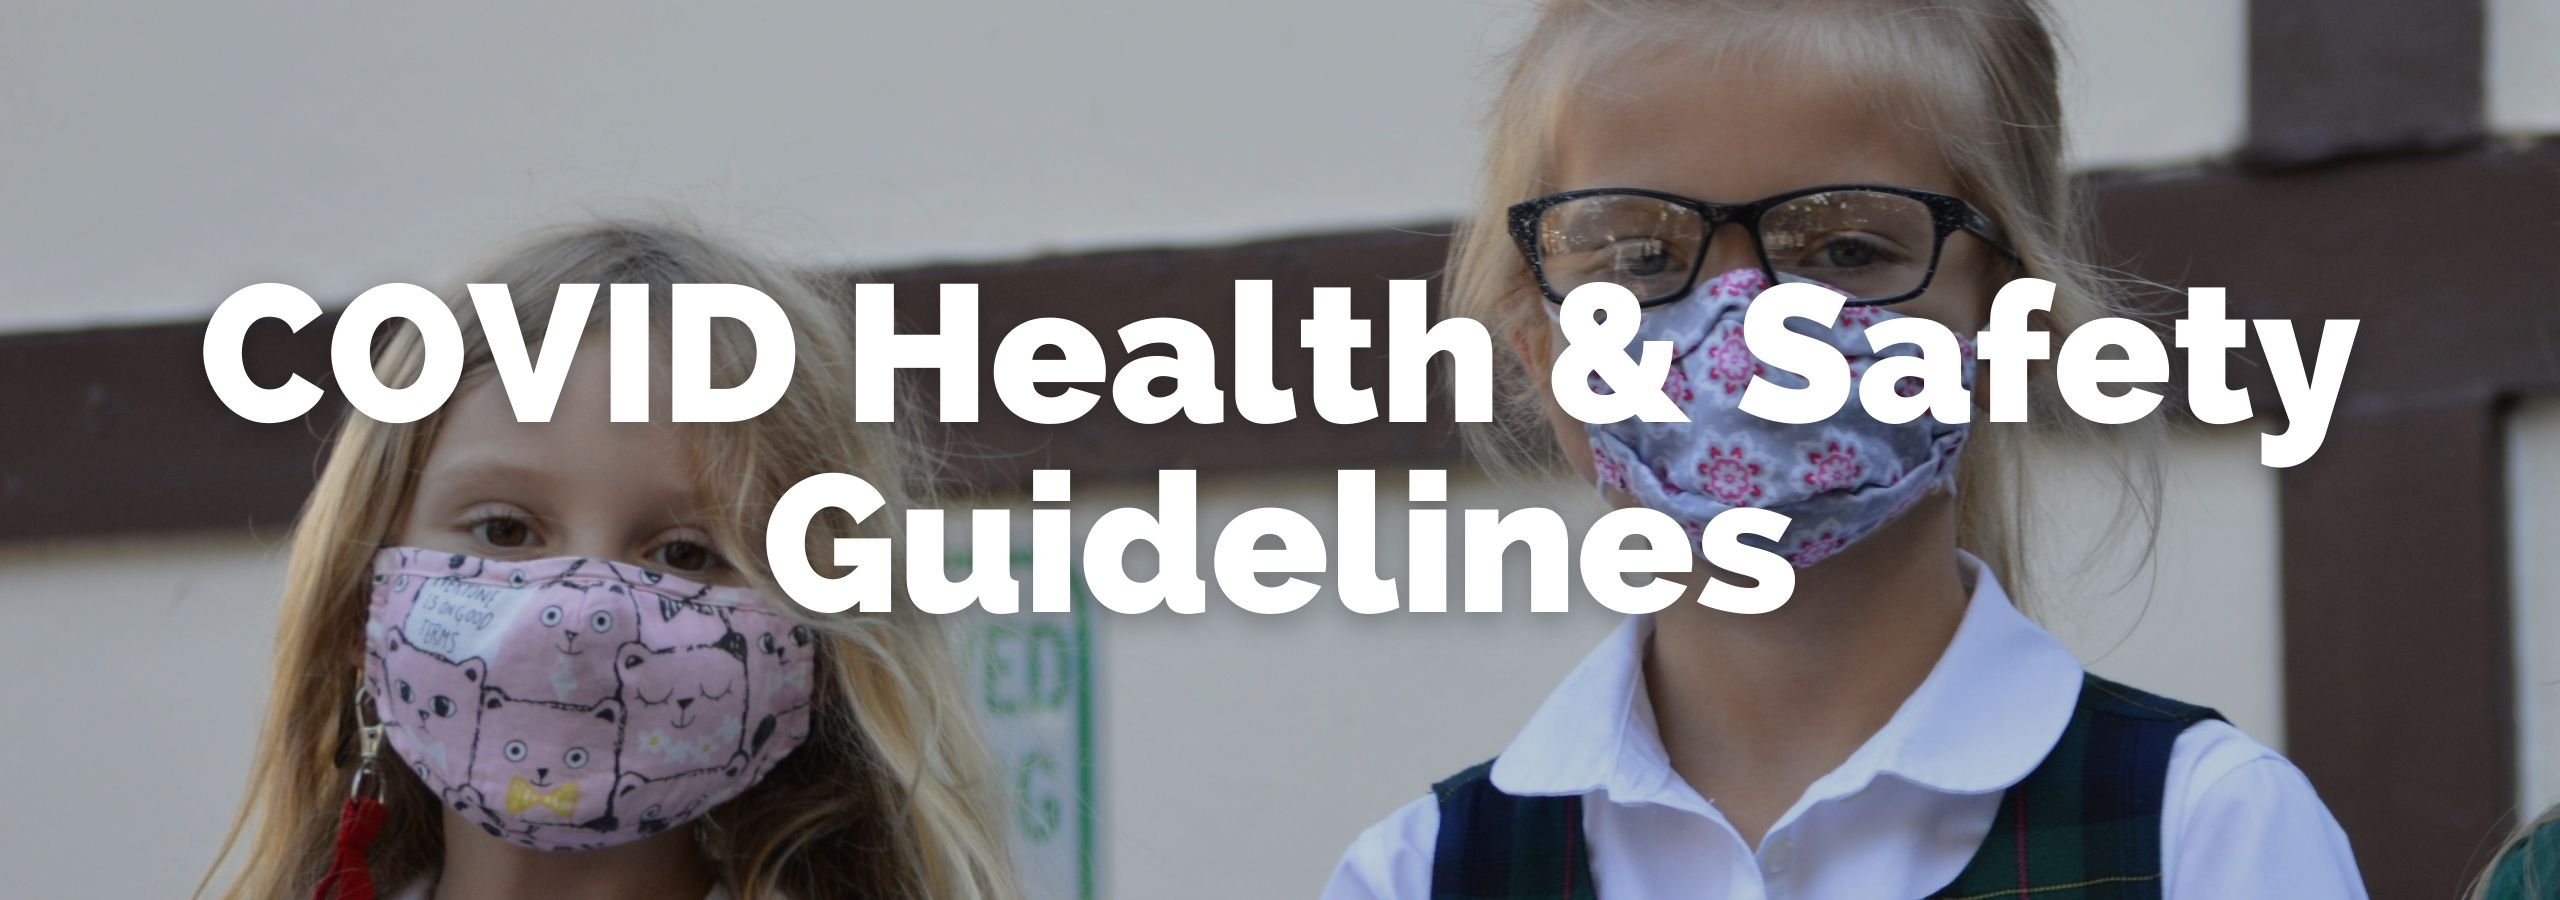 Covid Health and Safety Guidelines